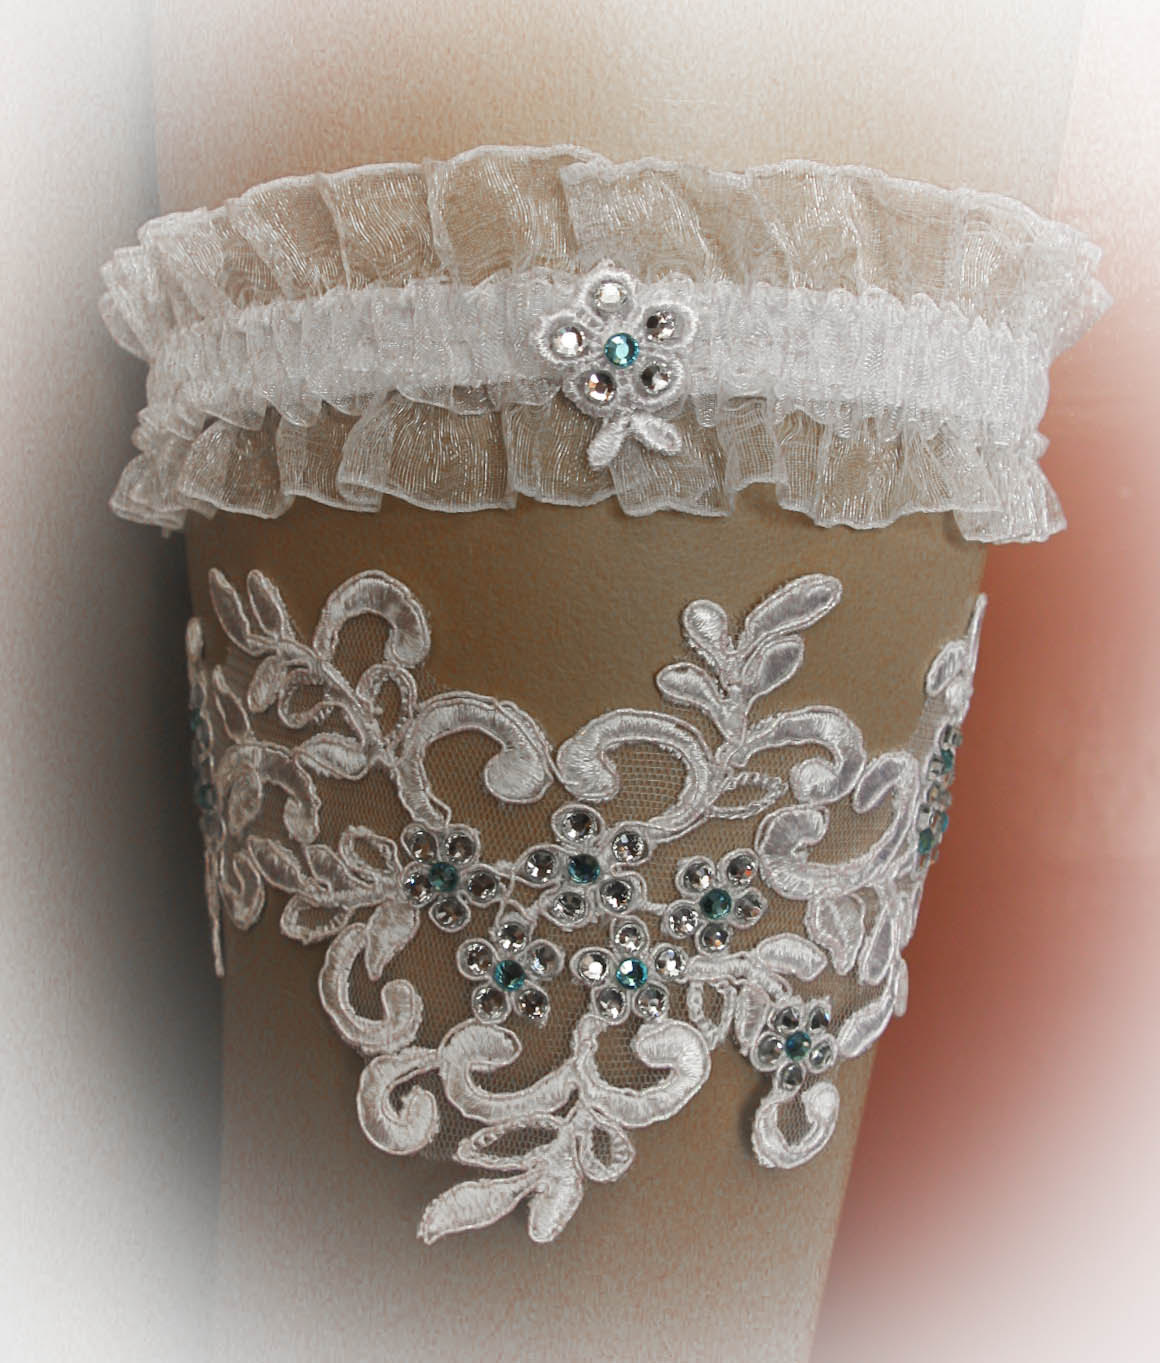 Lace Wedding Garter Set with Swarovski Crystals, Bridal Garter Set, Vintage Garter, Stretch Garter, Crystal Garter, Prom Garter